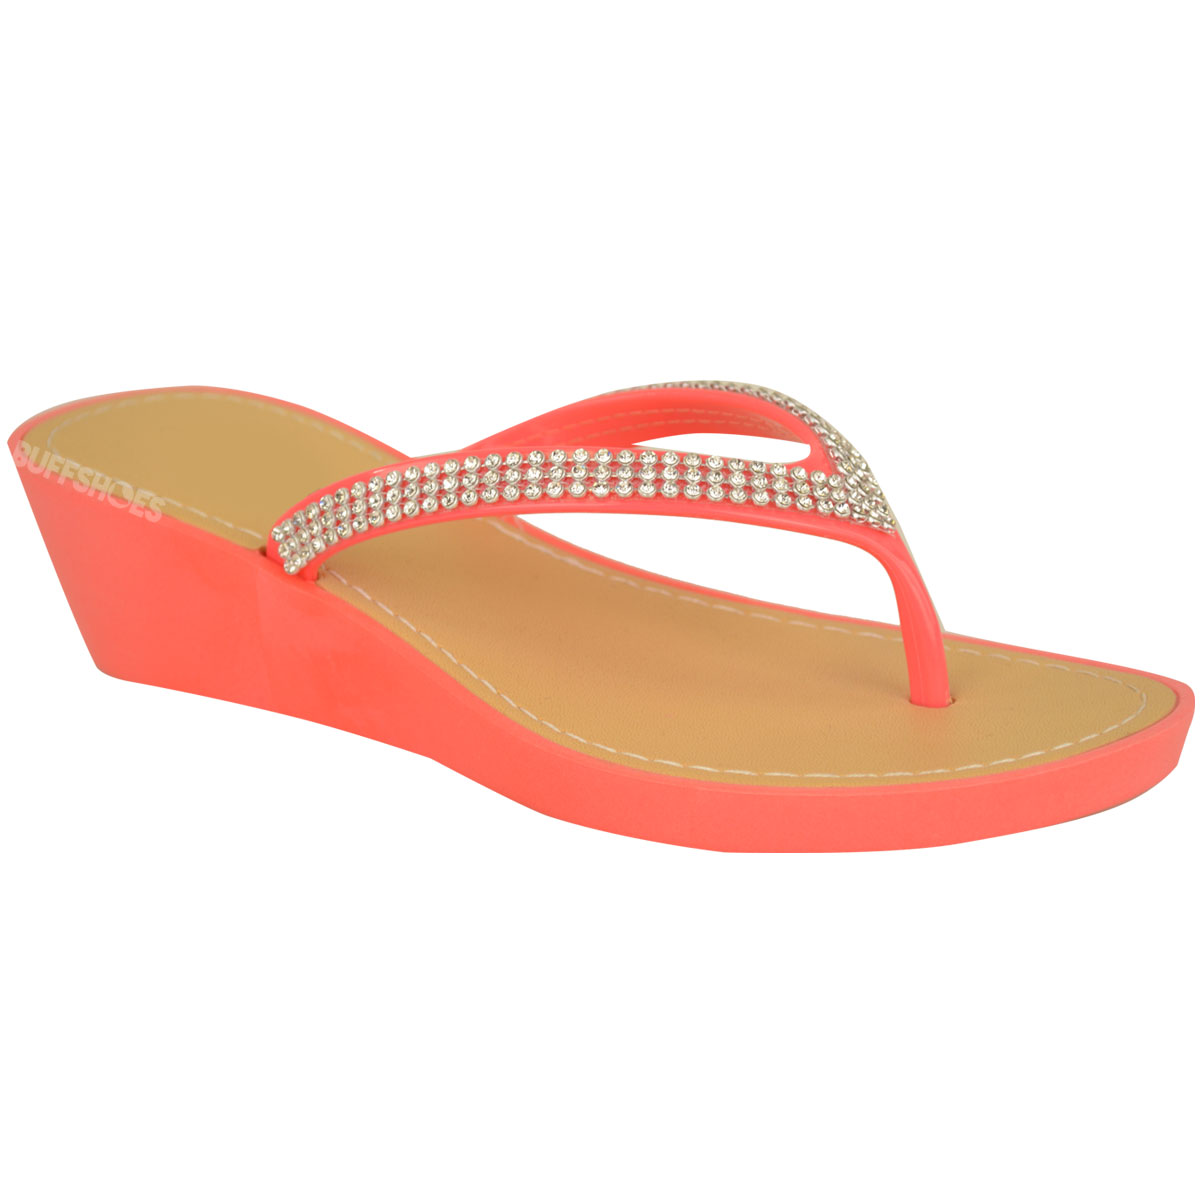 Jelly Shoes Womens Amazon